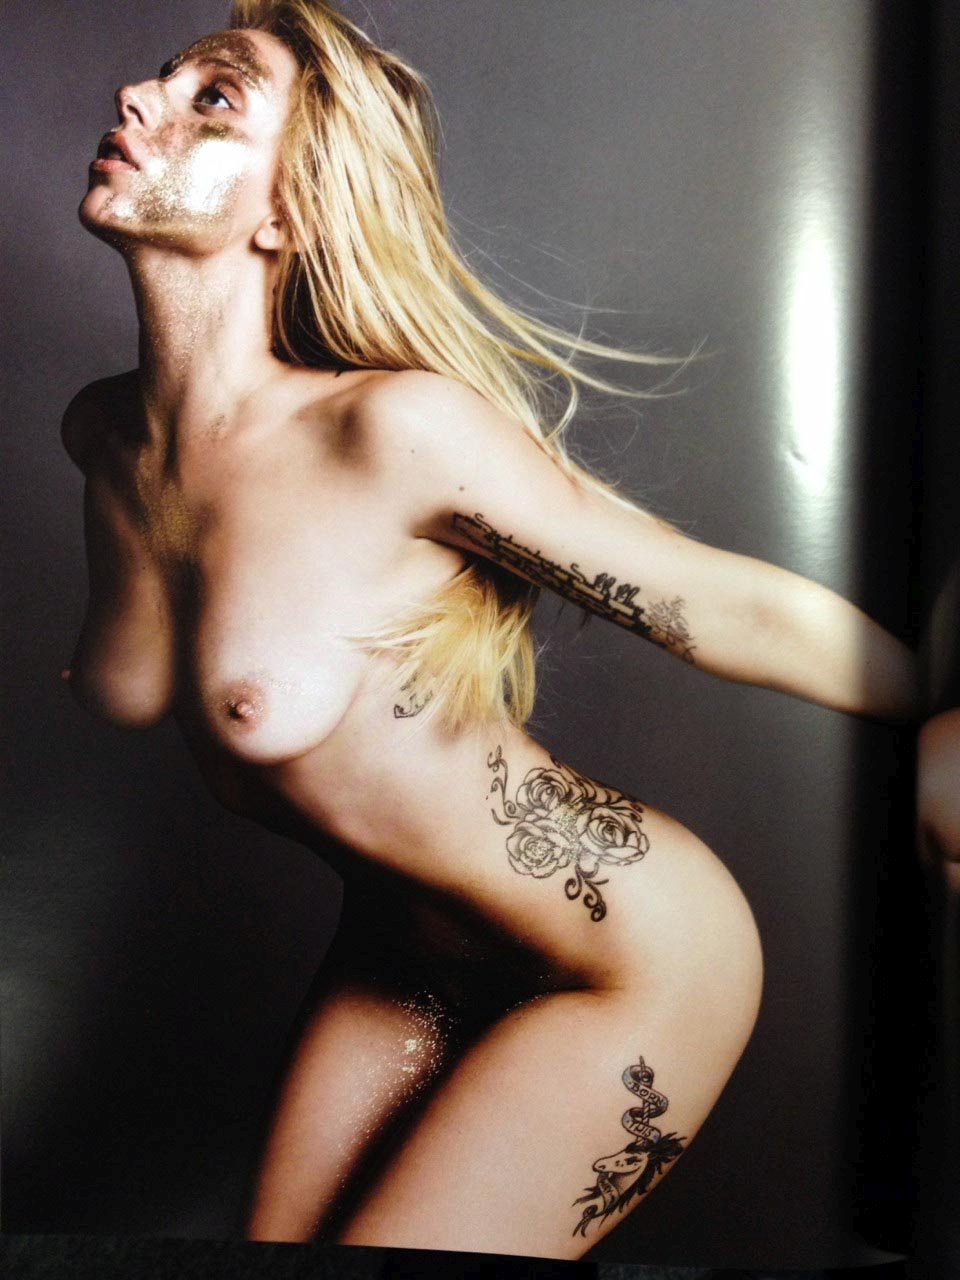 Sex naked lady gaga